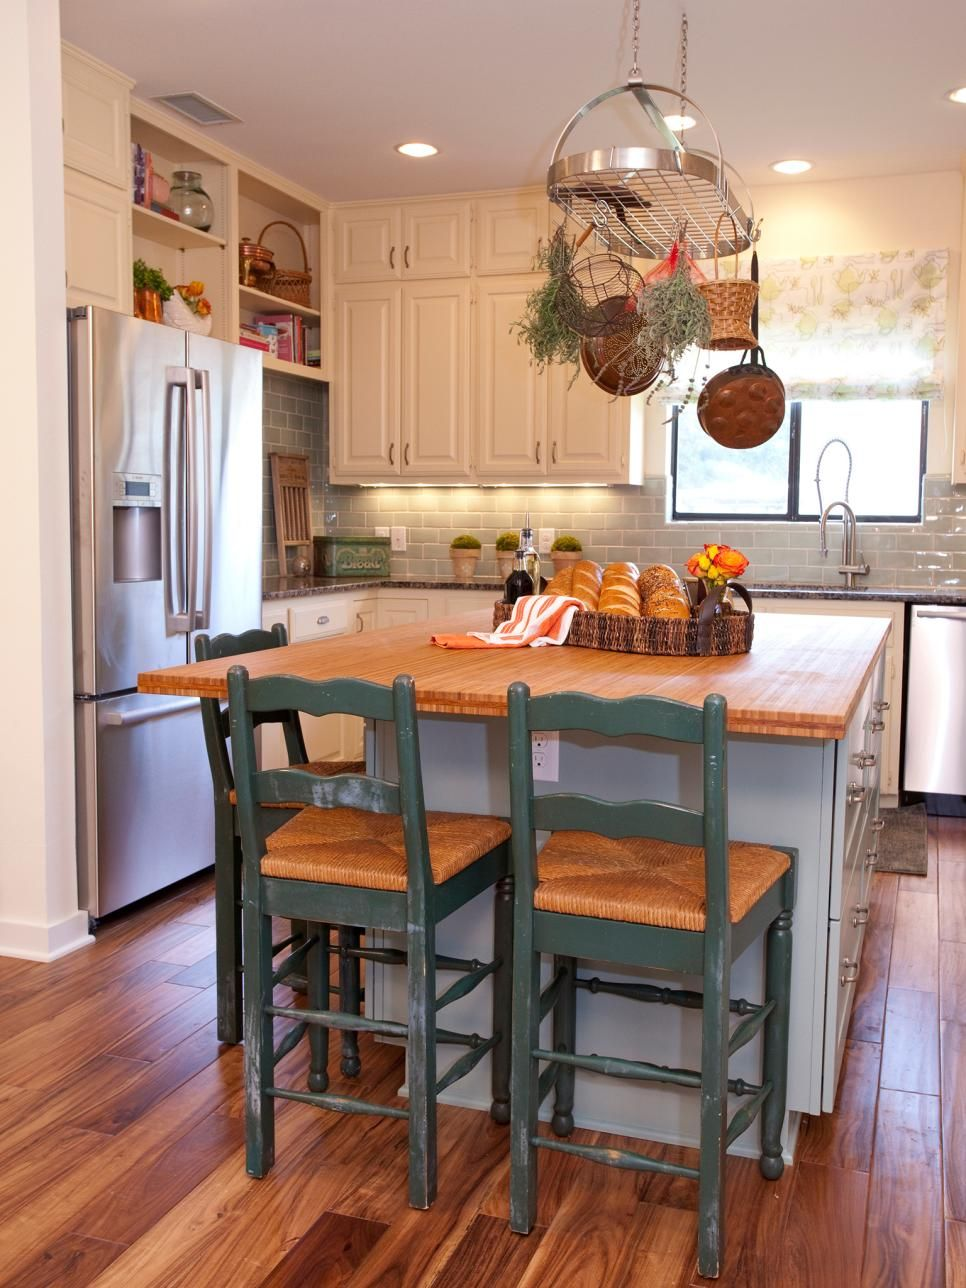 Beautiful pictures of kitchen islands hgtvus favorite design ideas